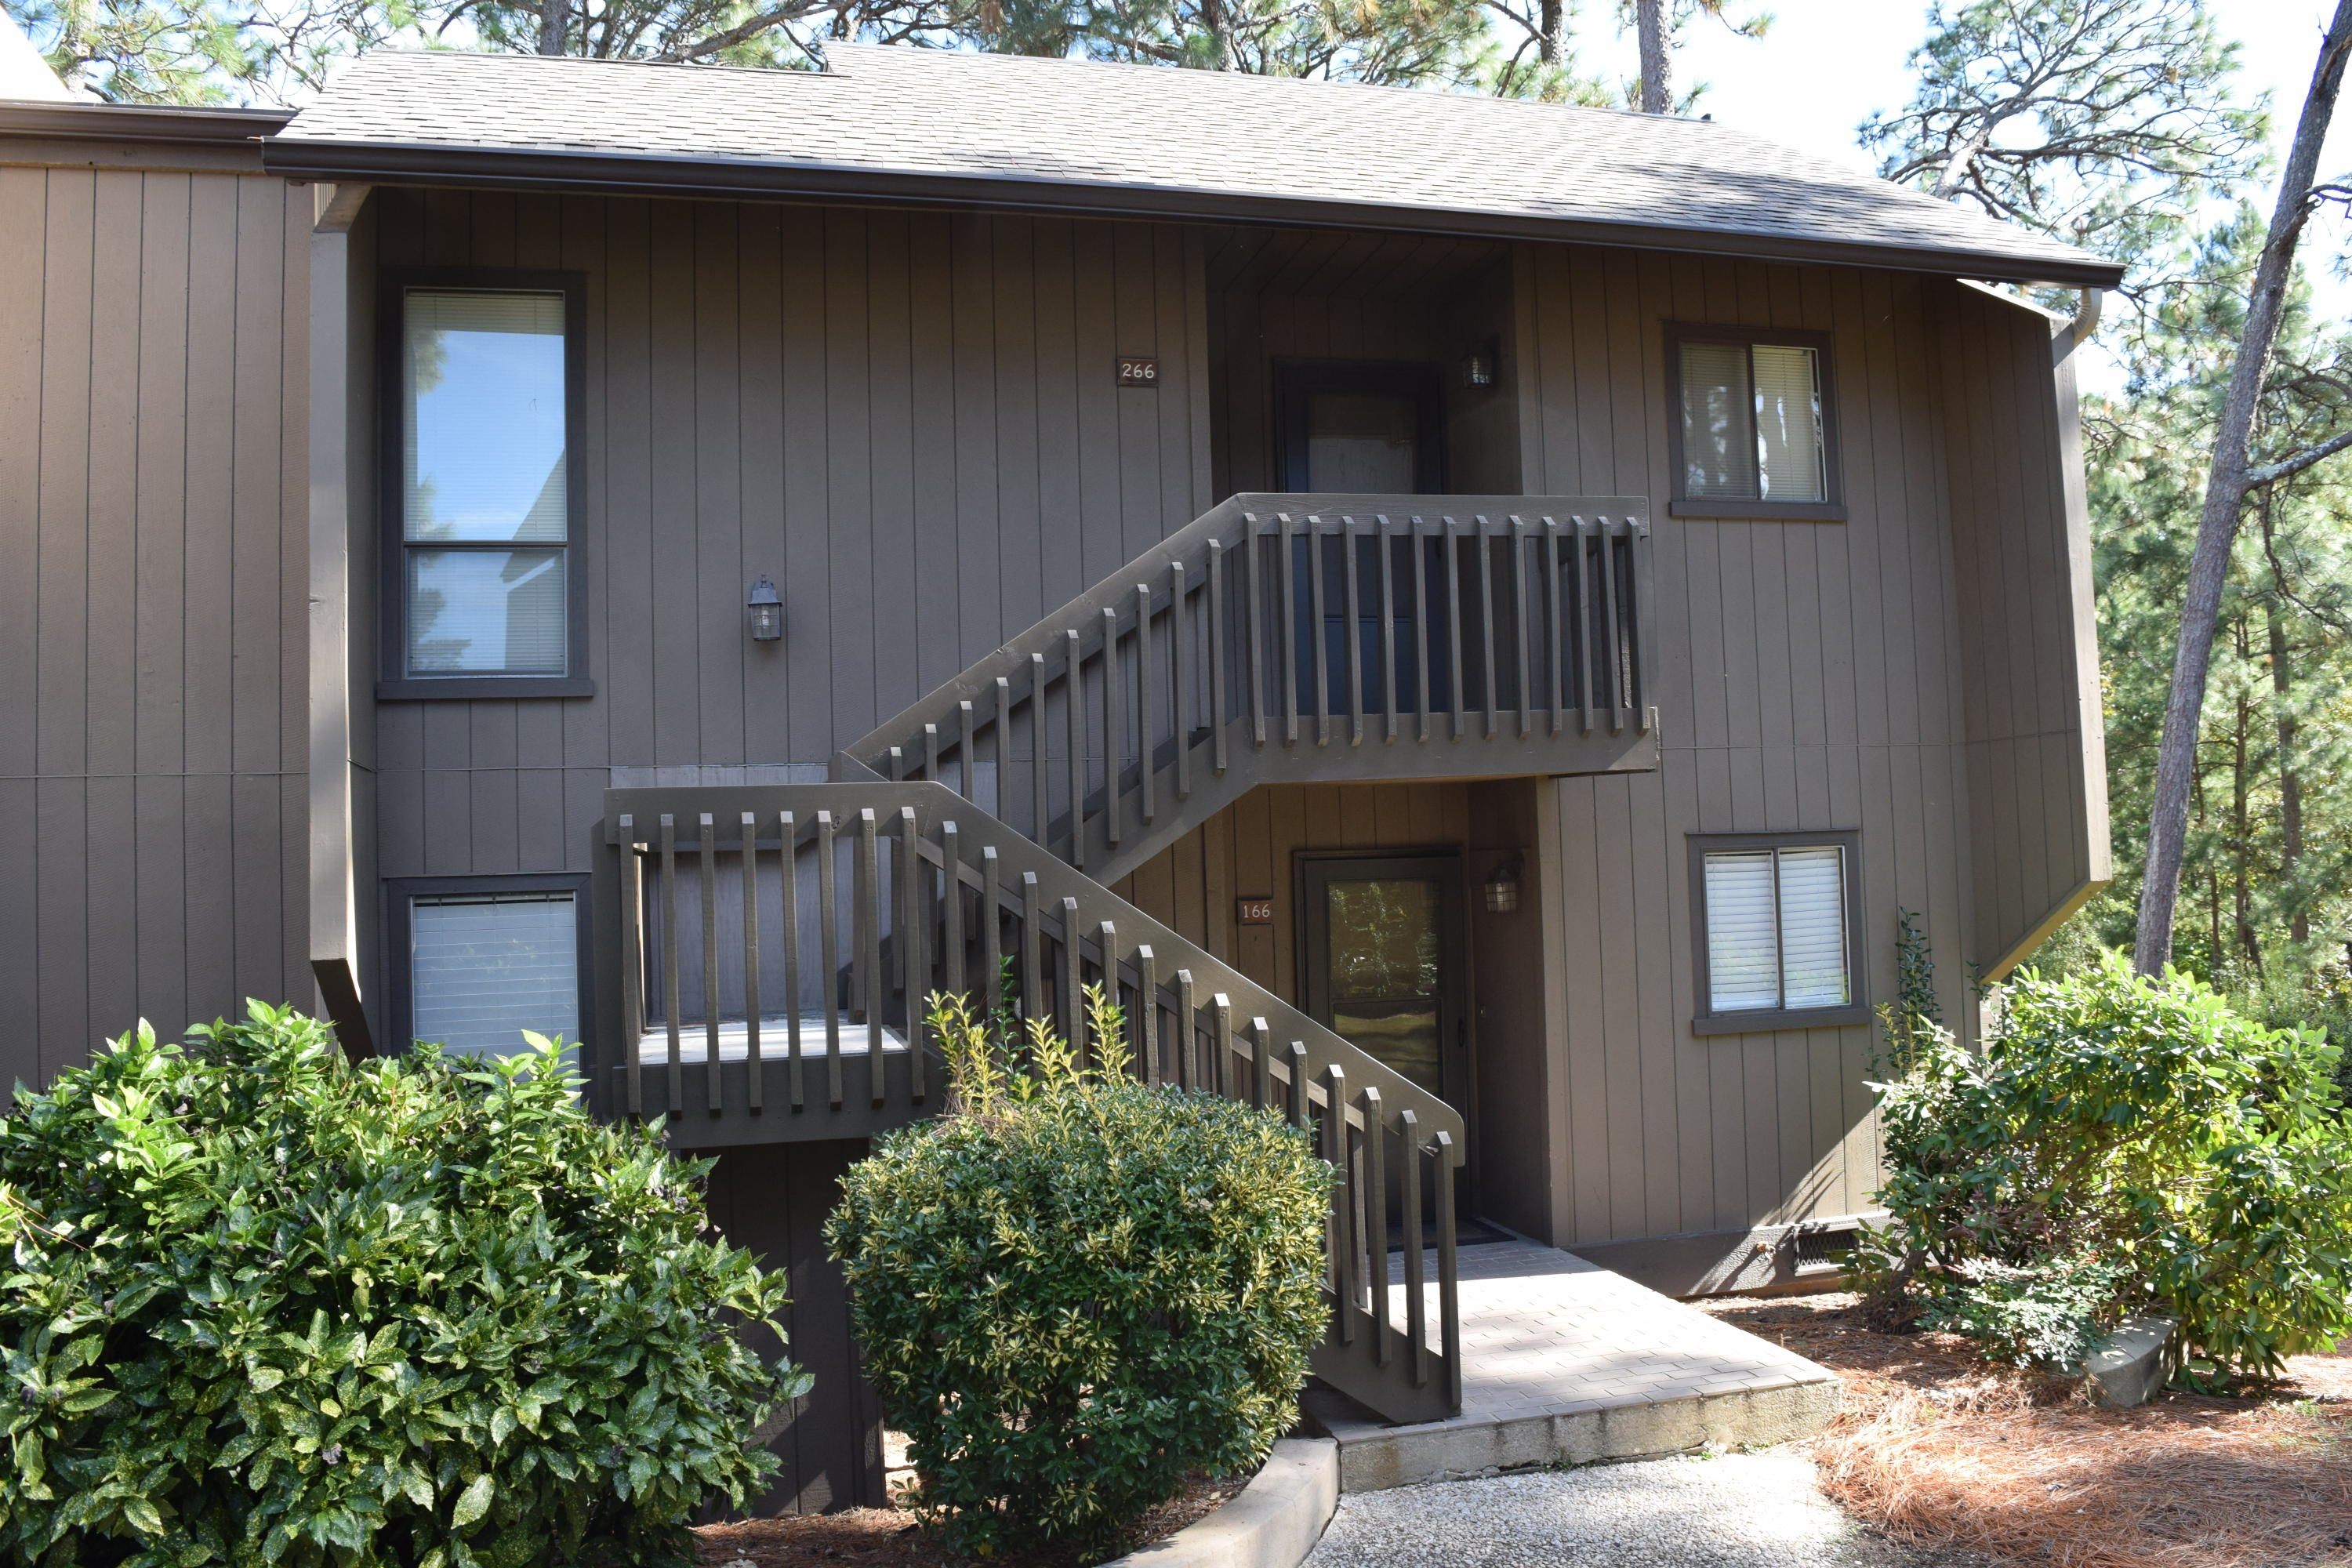 800  St Andrews Drive 266, Pinehurst in Moore County, NC 28374 Home for Sale